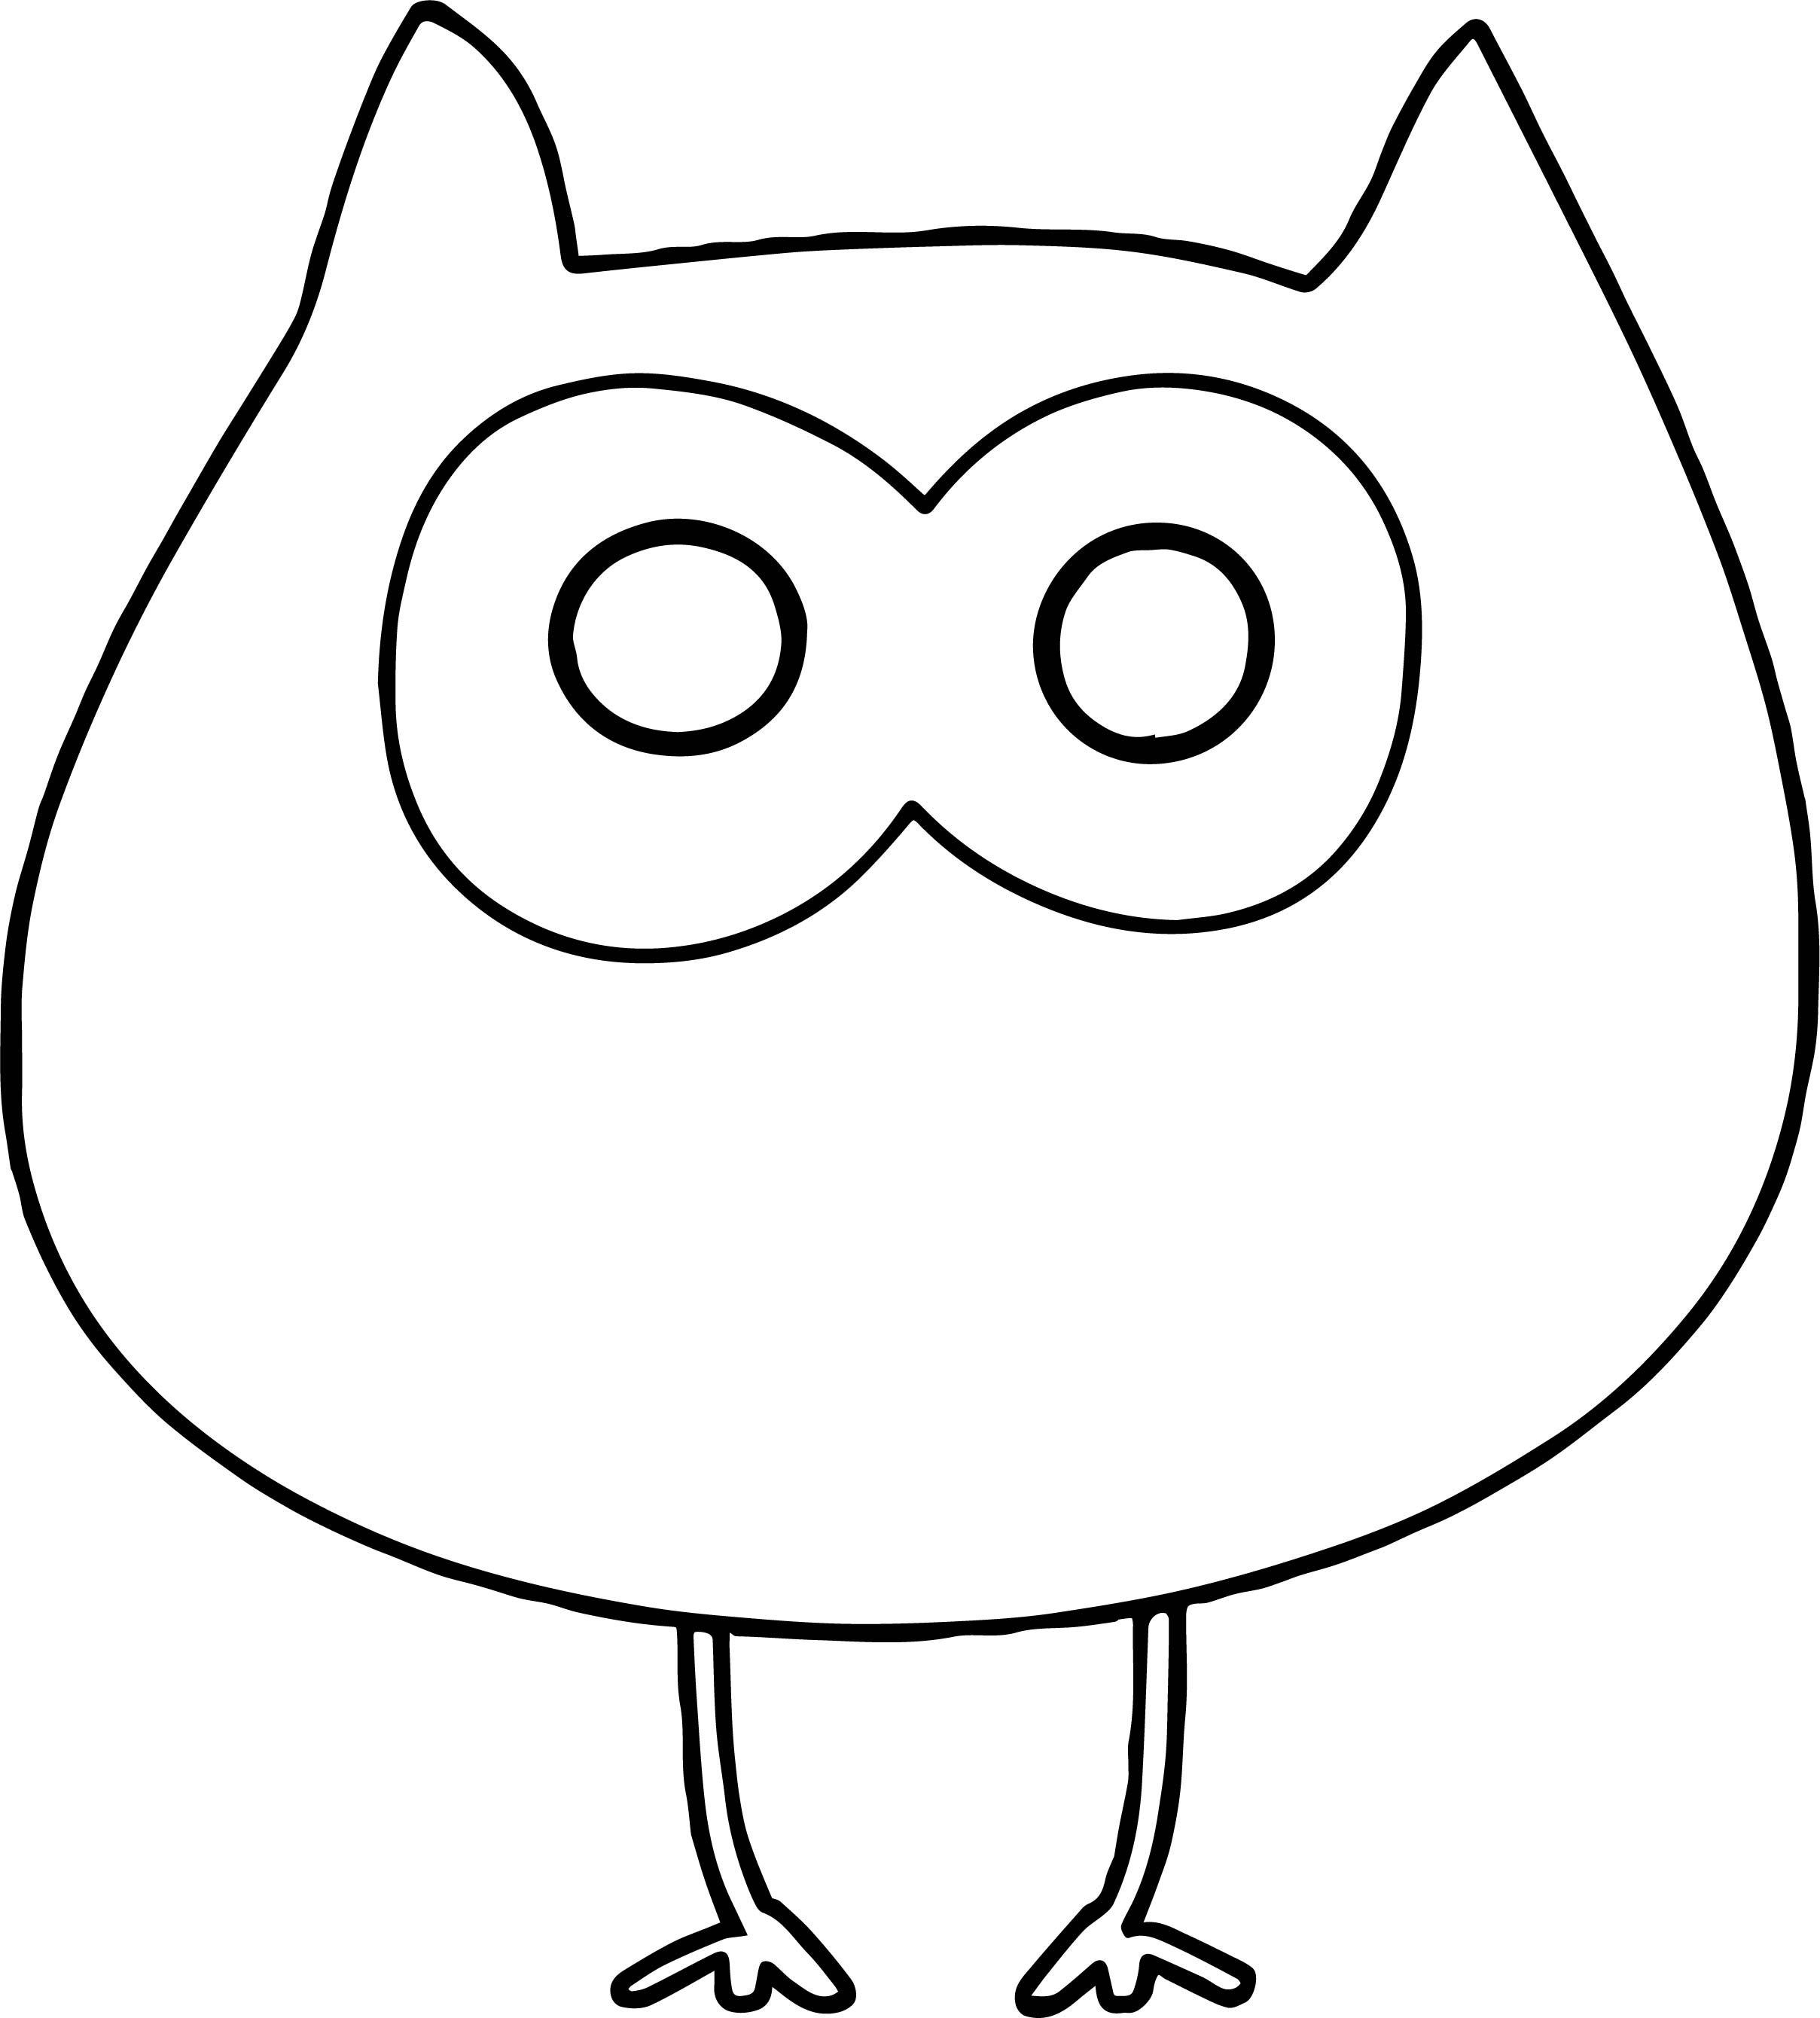 Owl Free Autumn For Party Decor Crafts And More Coloring Page